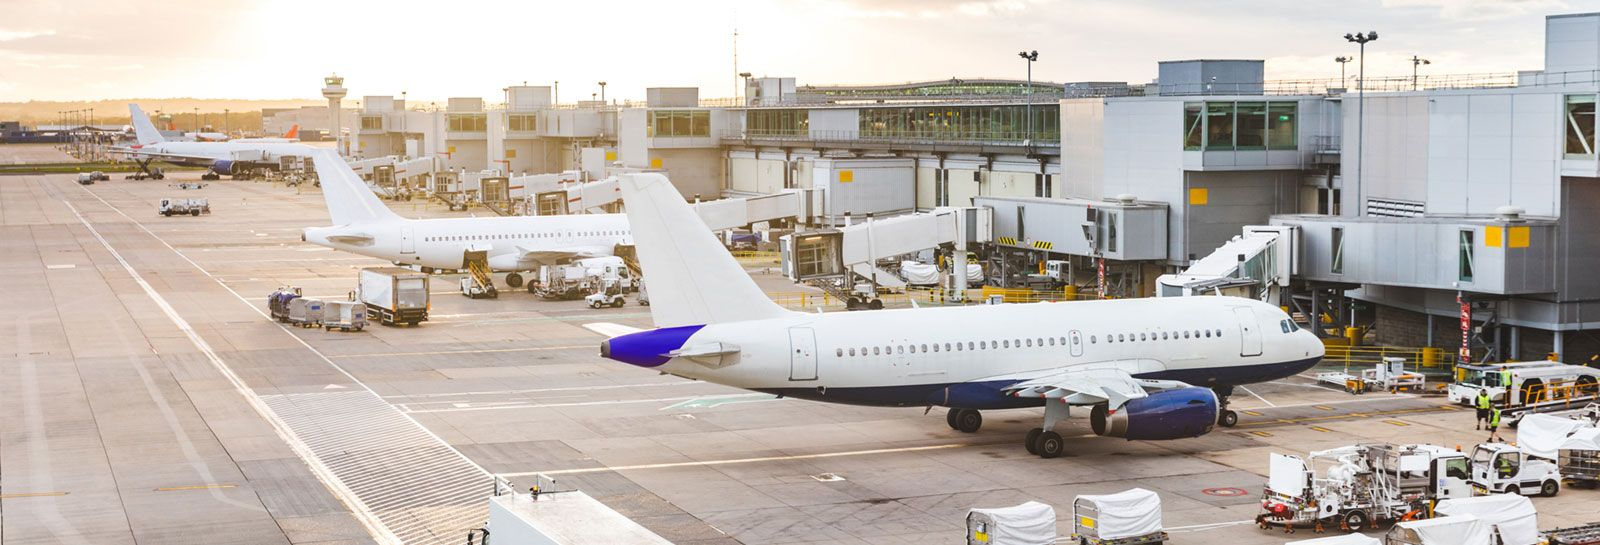 planes and service vehicles at airport banner image